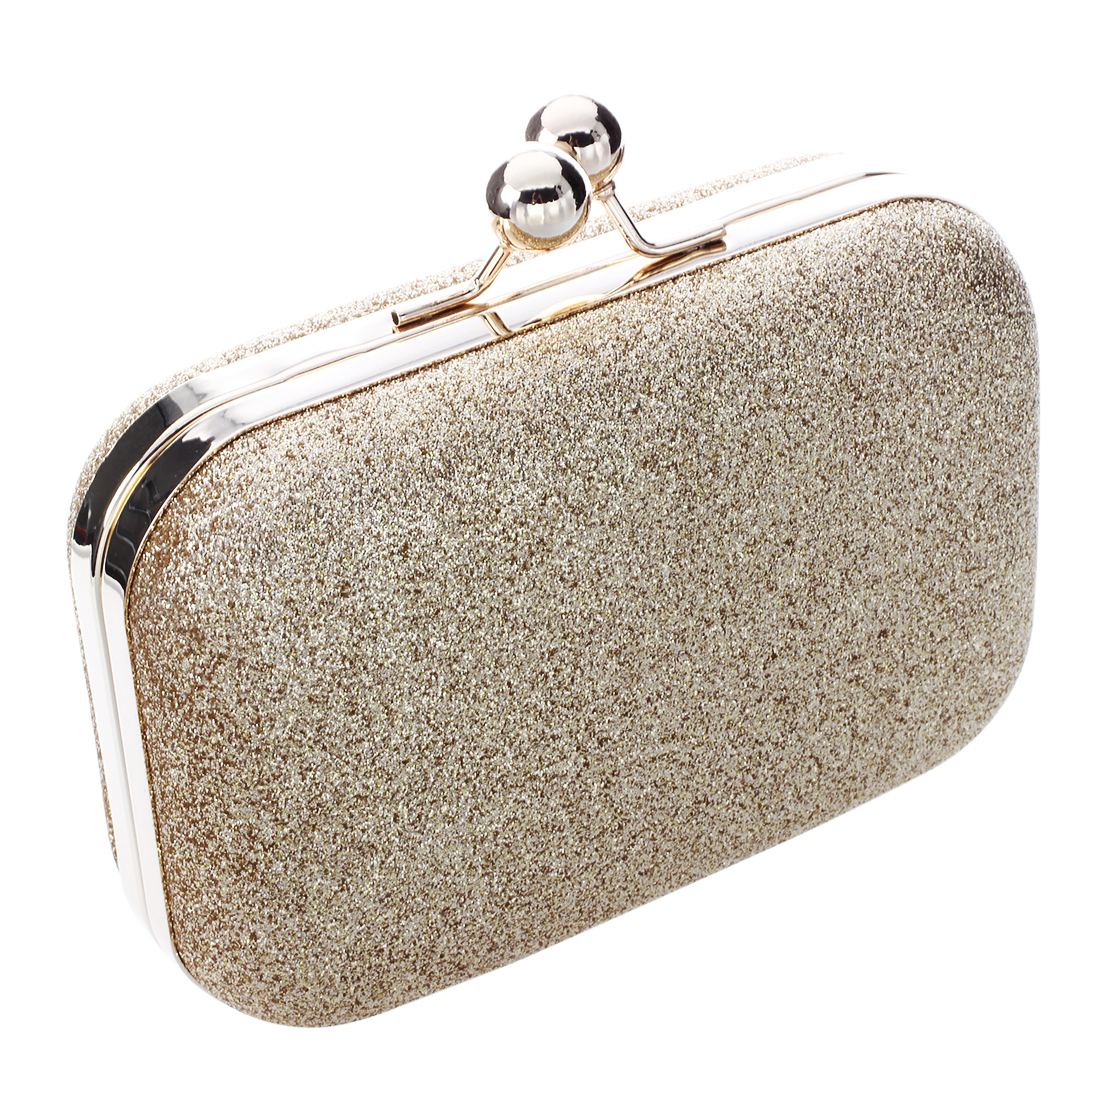 Hot Fashion Clutch Hand Bag Women PU Leather Evening Party Shoulder Bag Gold Bling Gold Box Shaped Bag with Metal Chain  new fashion women party clutch bag pu leather hollow metal bow buckle evening bag female banquet handbag with shoulder chain